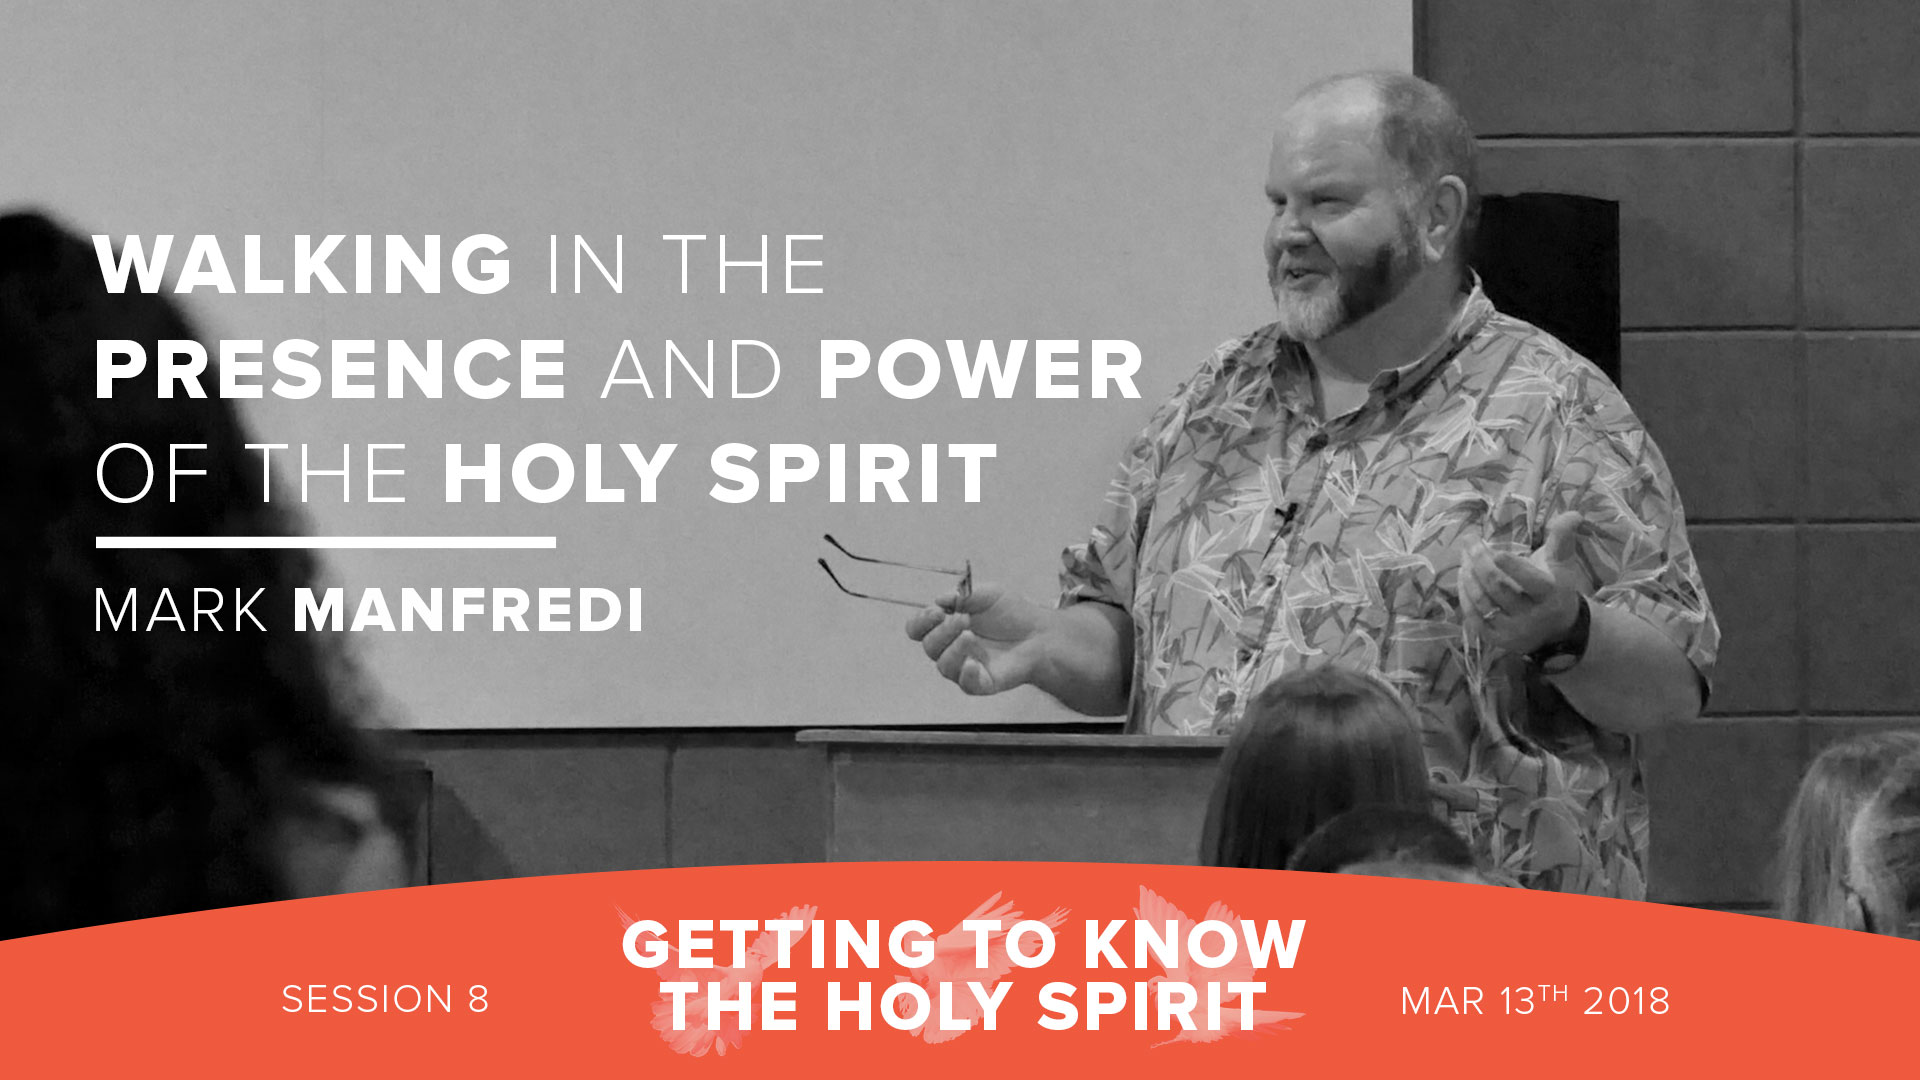 Session 8 - Walking in the Presence and Power of the Holy Spirit